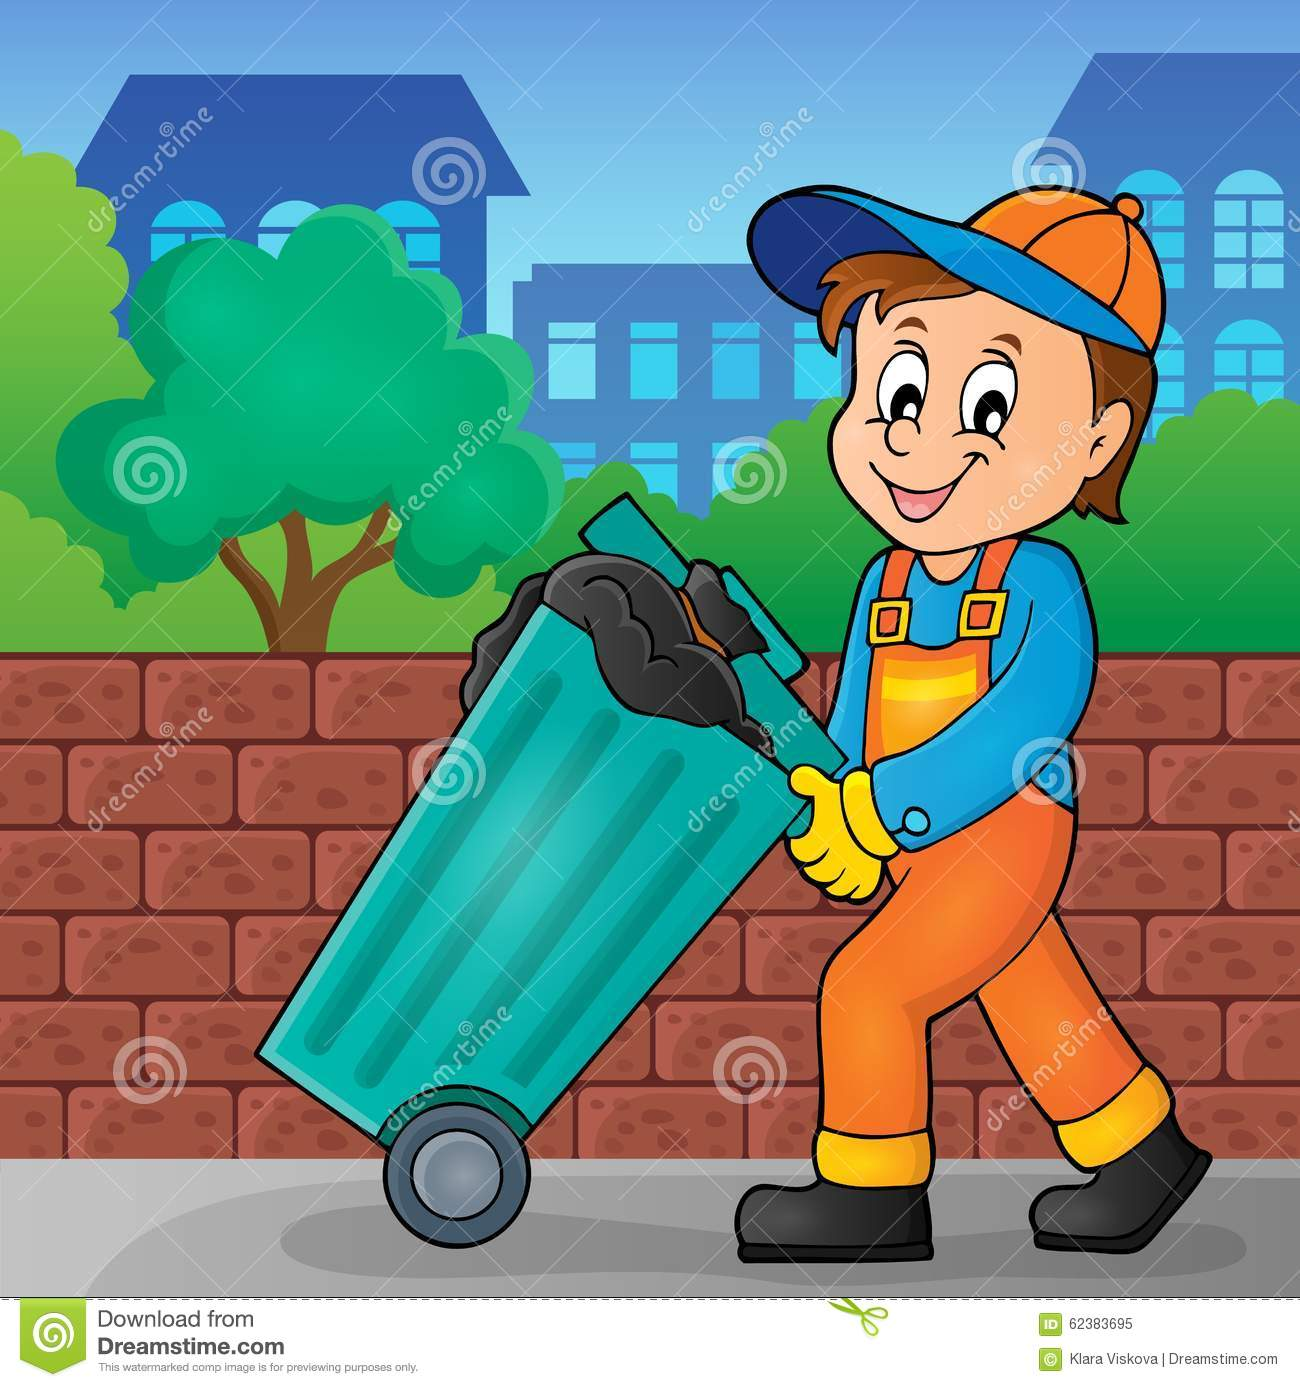 Garbage Collector Theme Image 2 Stock Vector Image 62383695